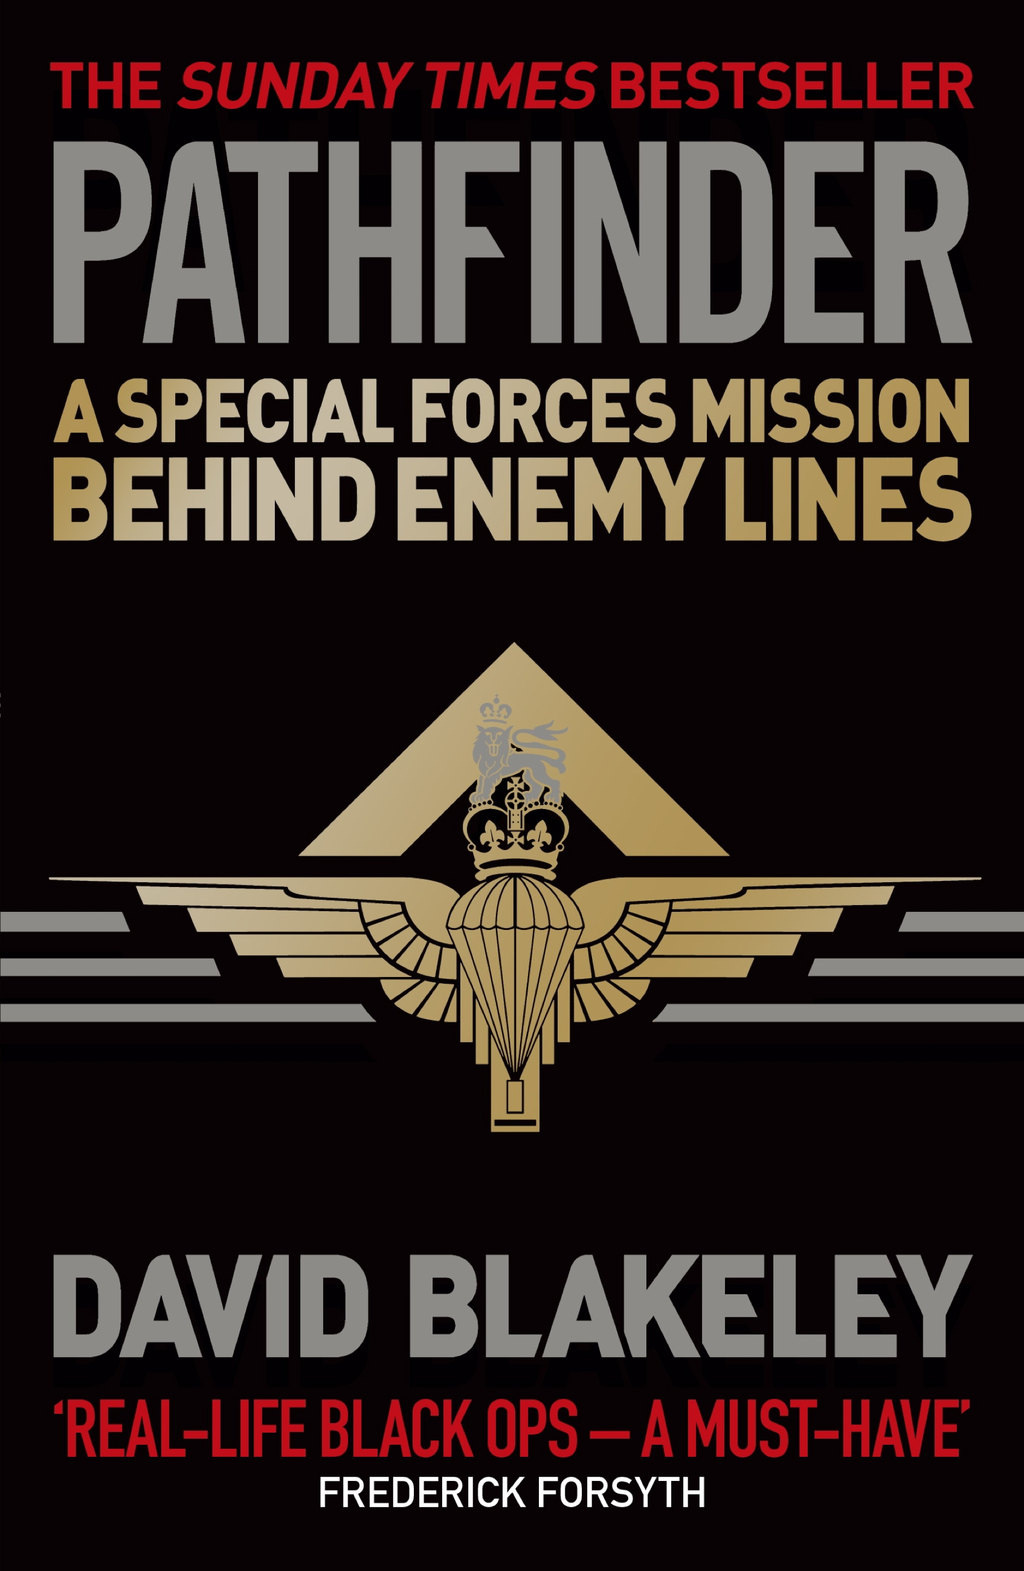 Pathfinder A Special Forces Mission Behind Enemy Lines